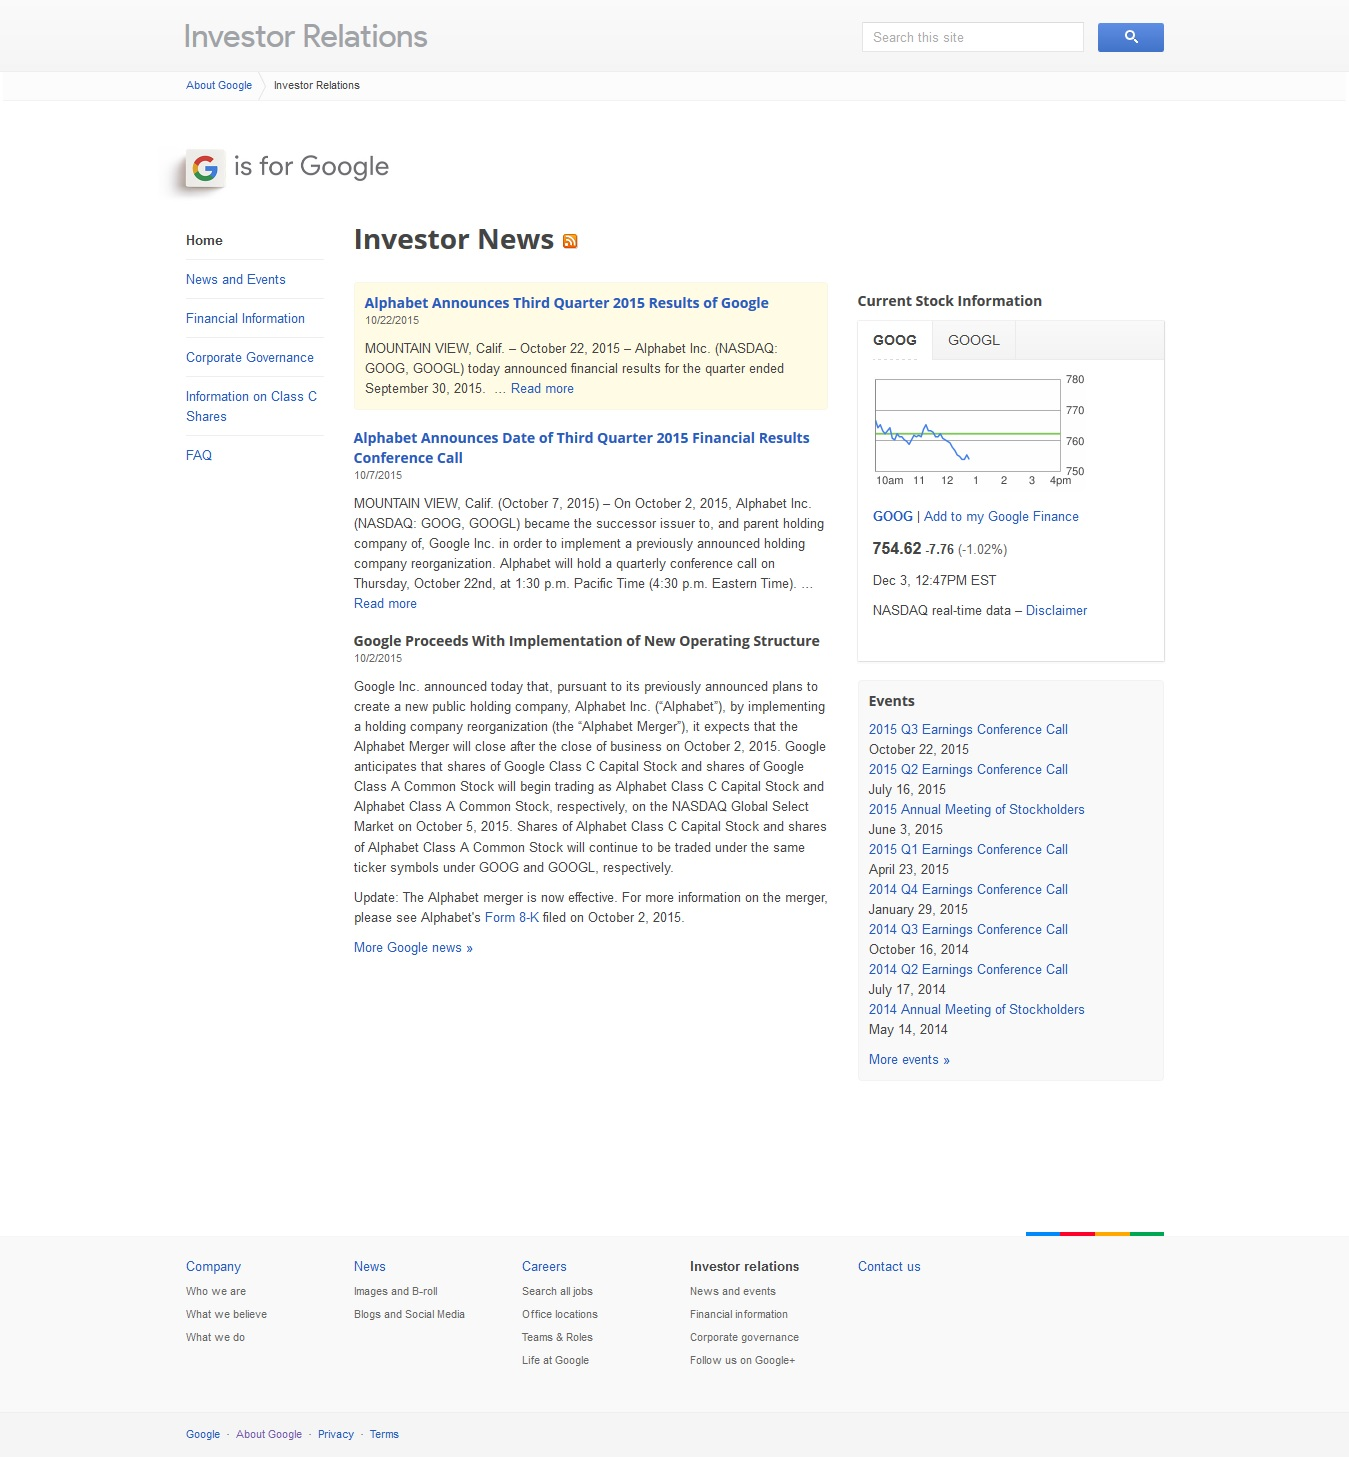 Google IPO Investor Relations Page